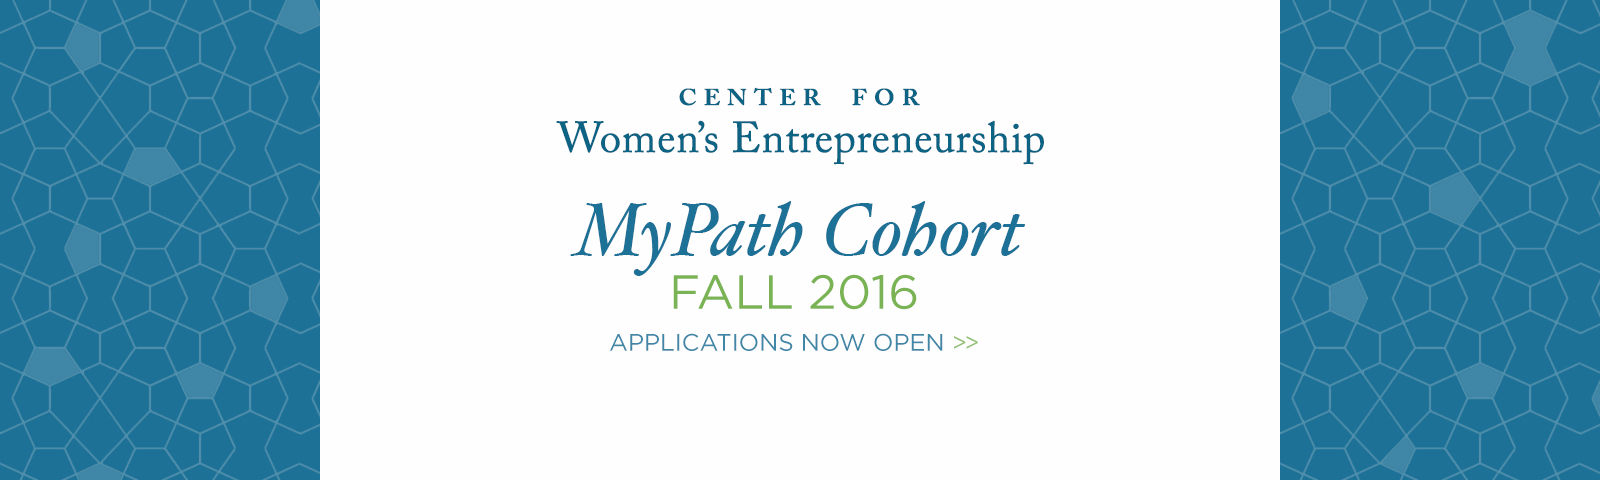 My Path Cohort - Accepting Applications for Fall 2016!